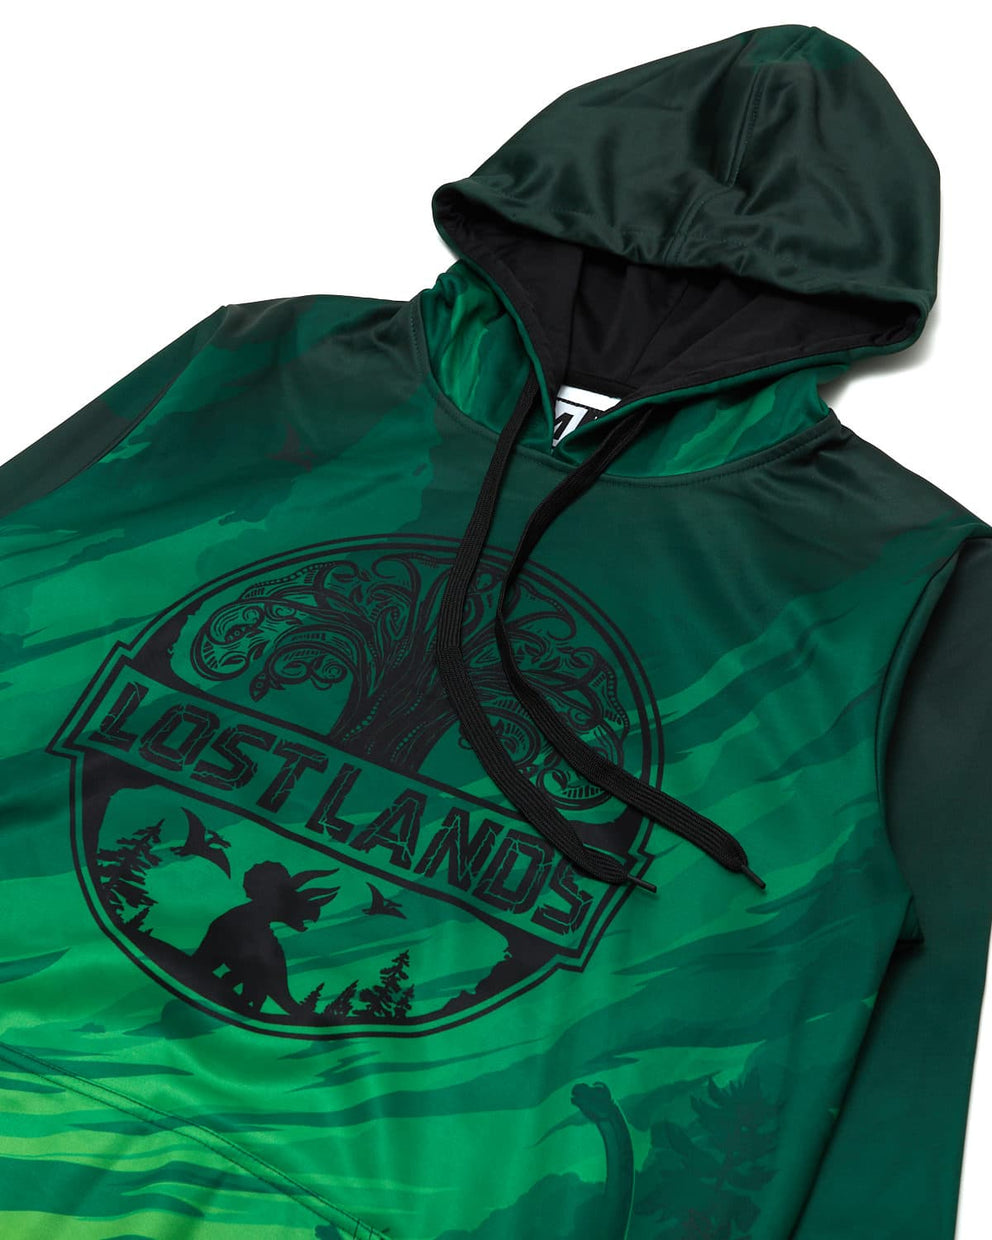 Official Lost Lands 2019 Line Up Dye Sub Hoodie - Green/Black